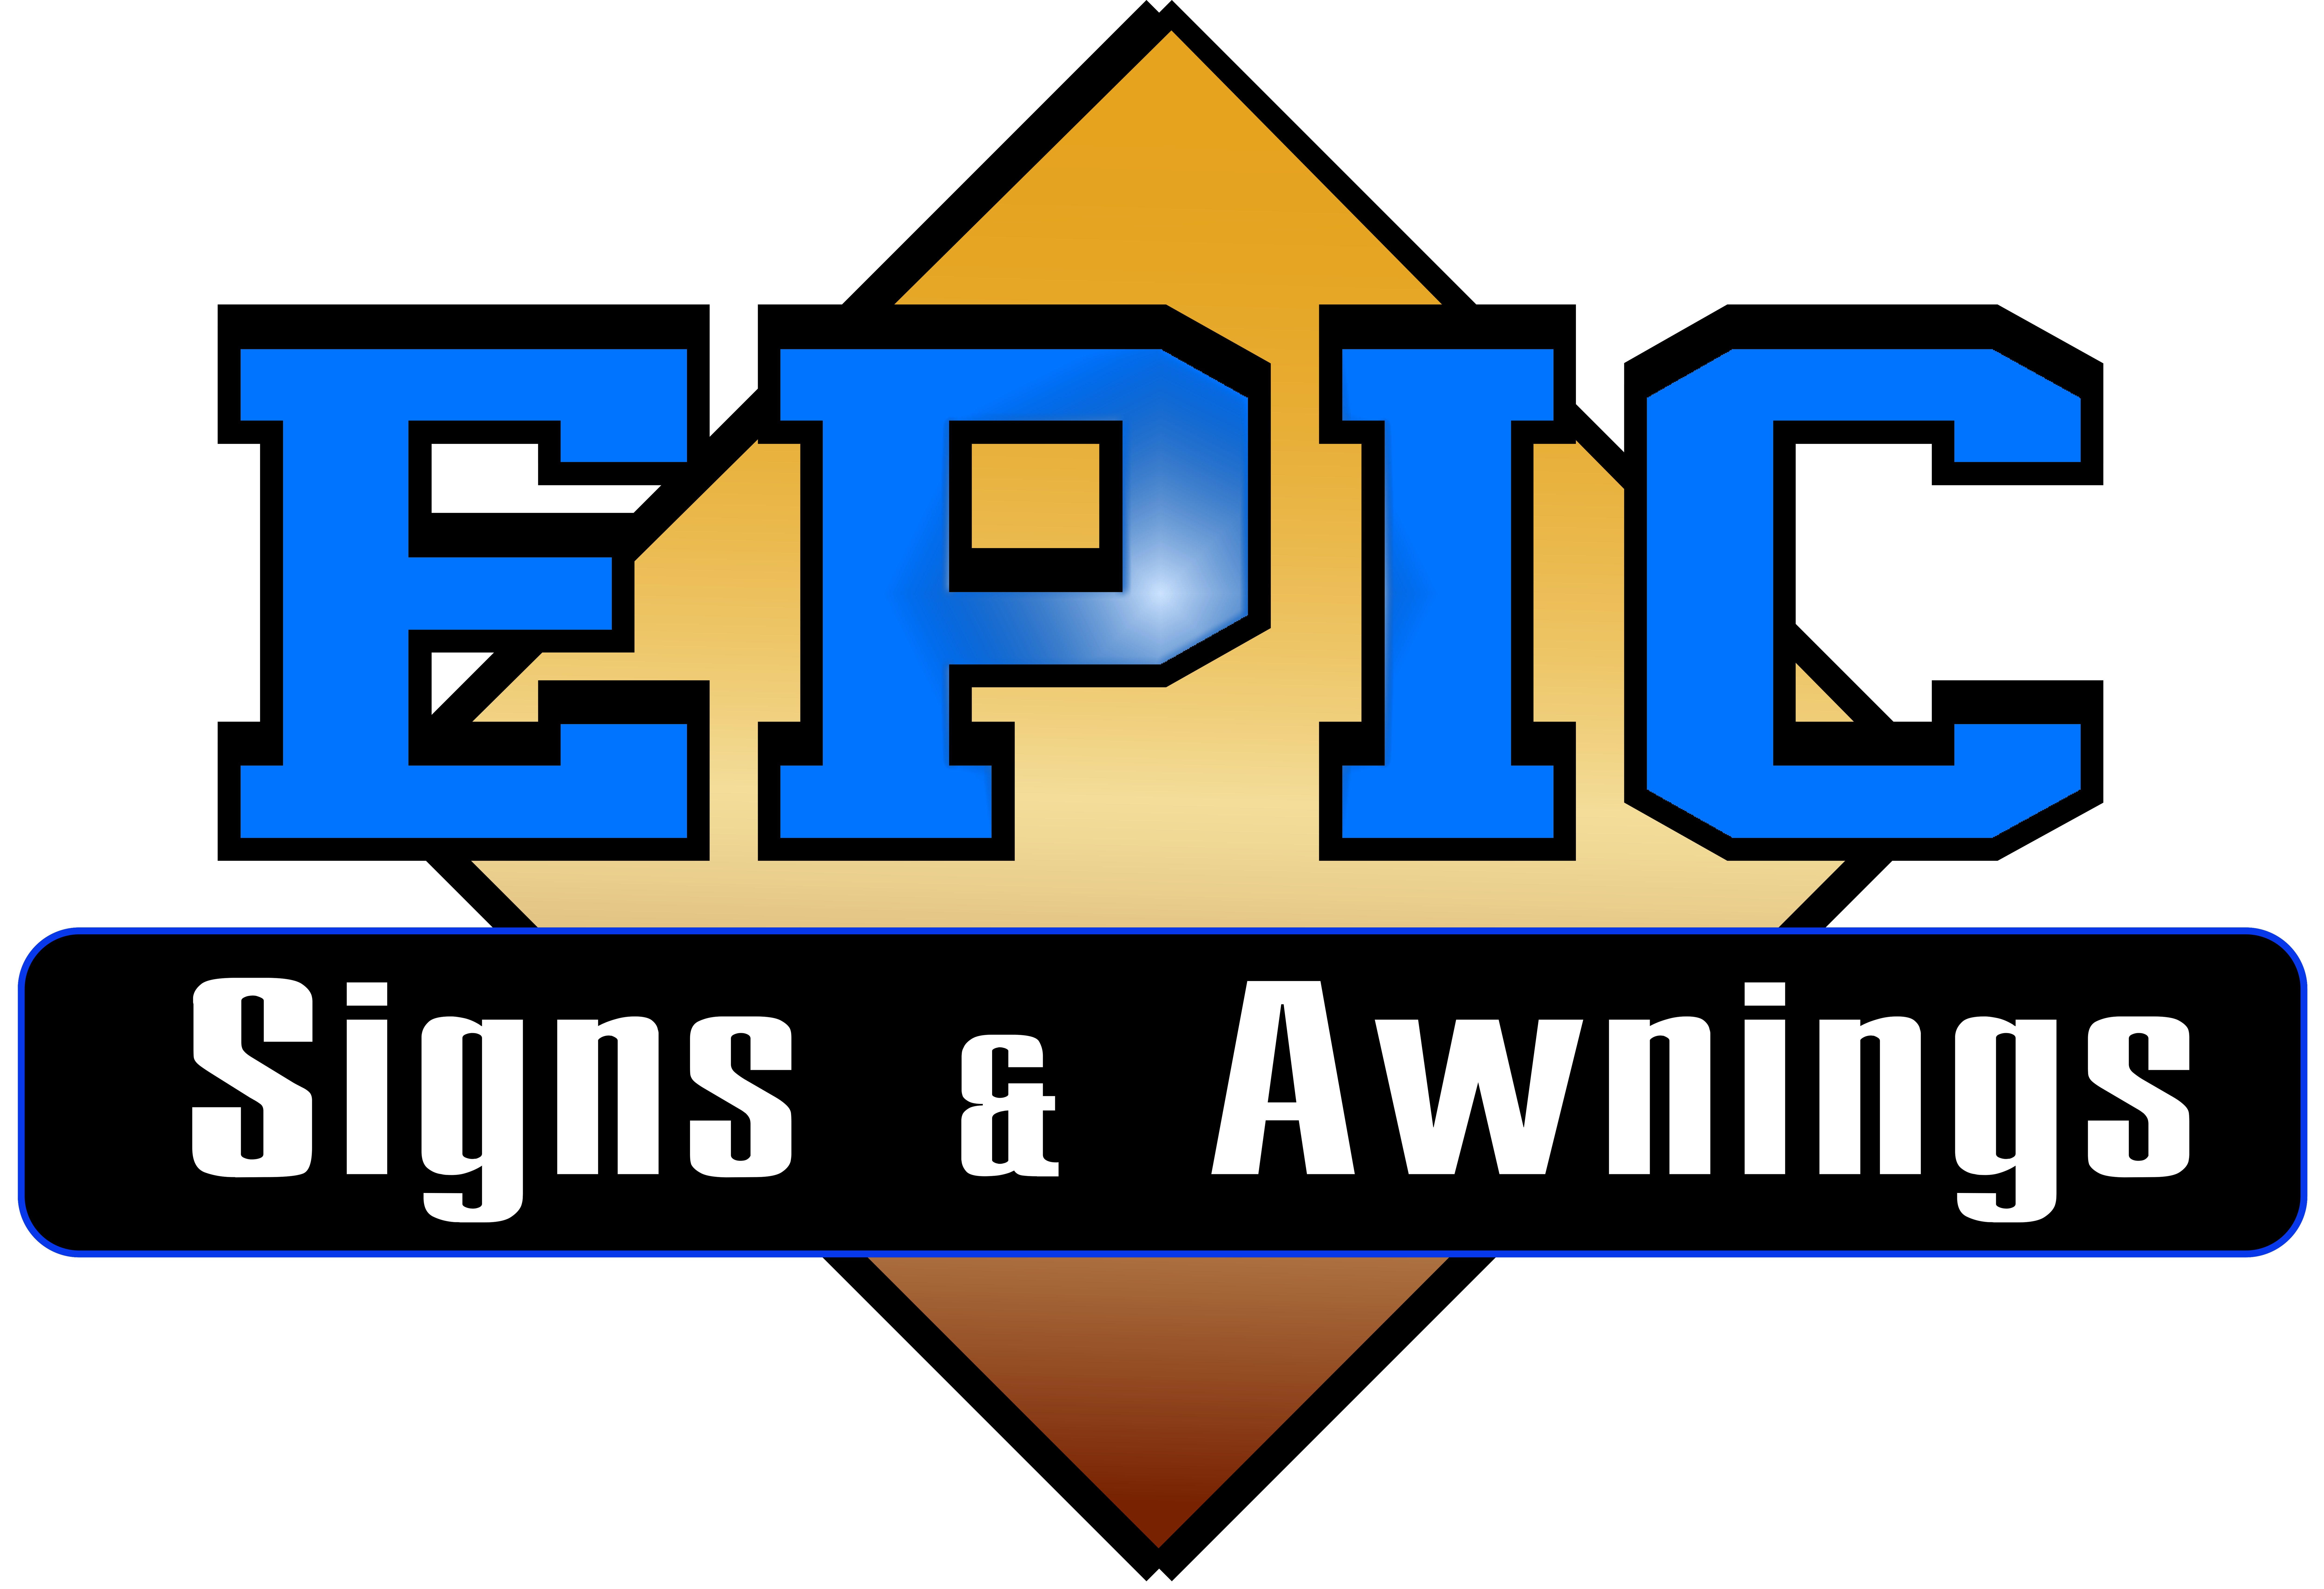 WELCOME TO EPIC SIGNS AND AWNINGS